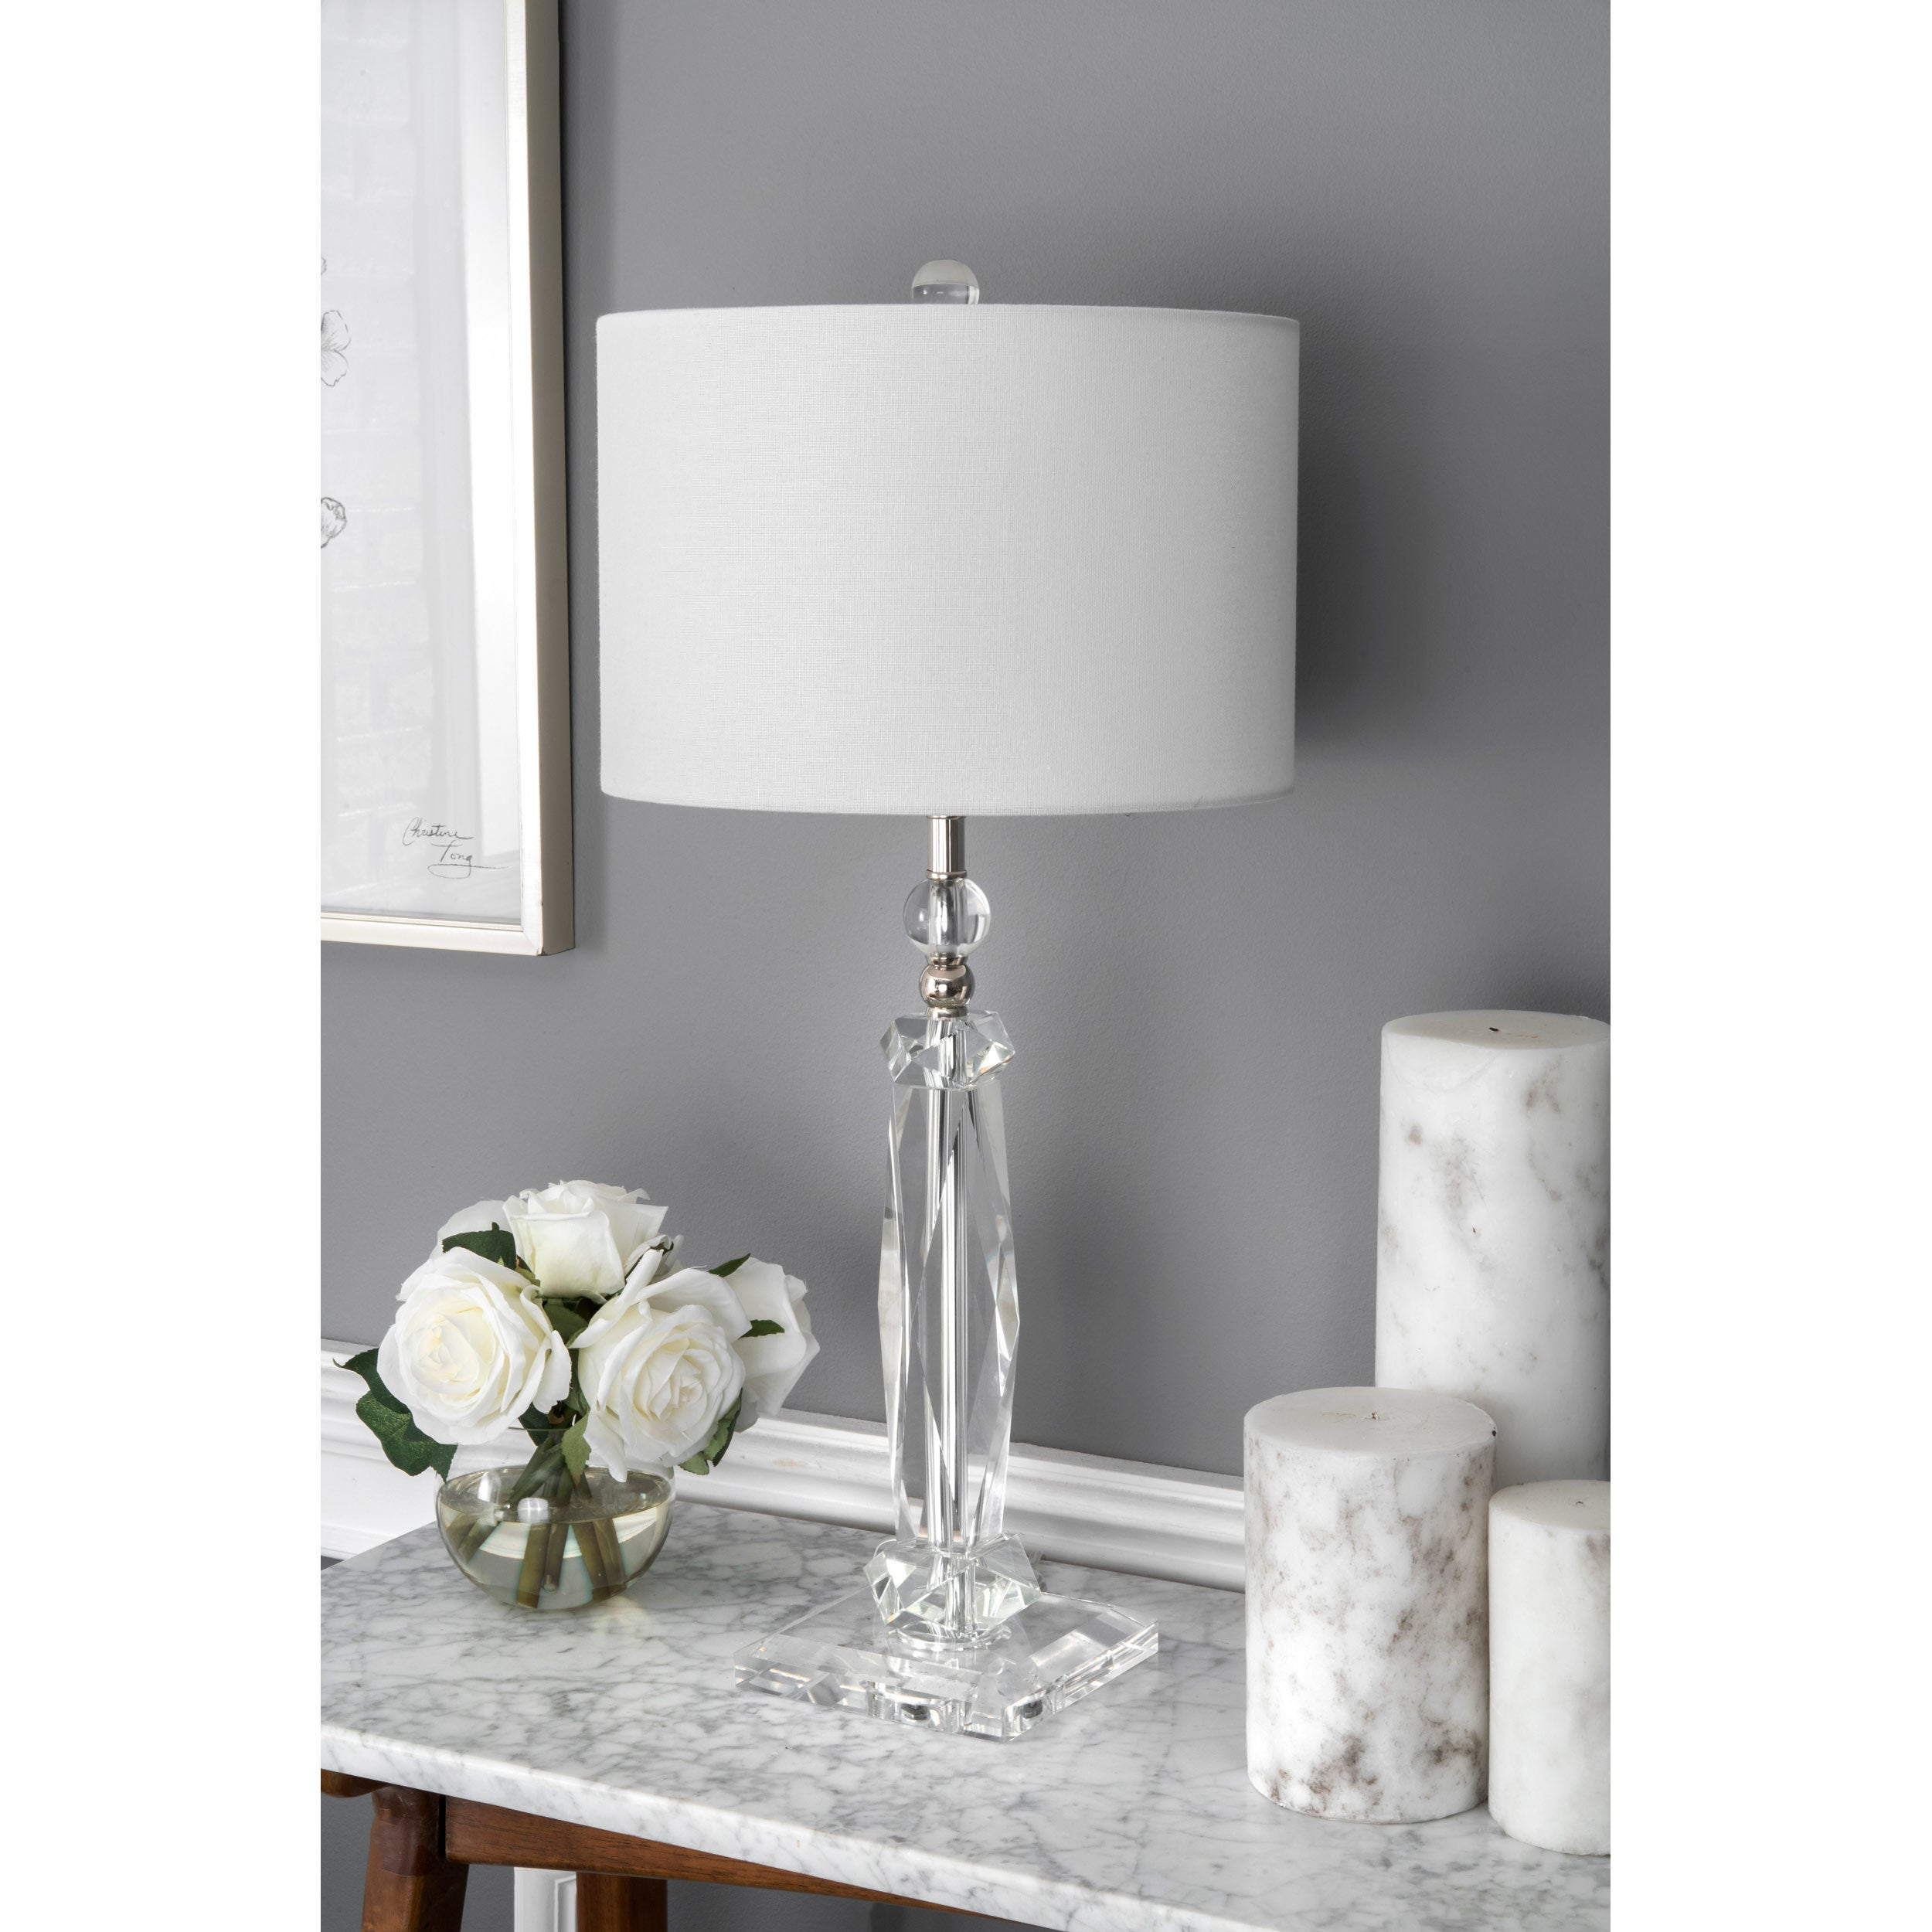 crystals table lamp products grand encased fn chrome lighting lamps